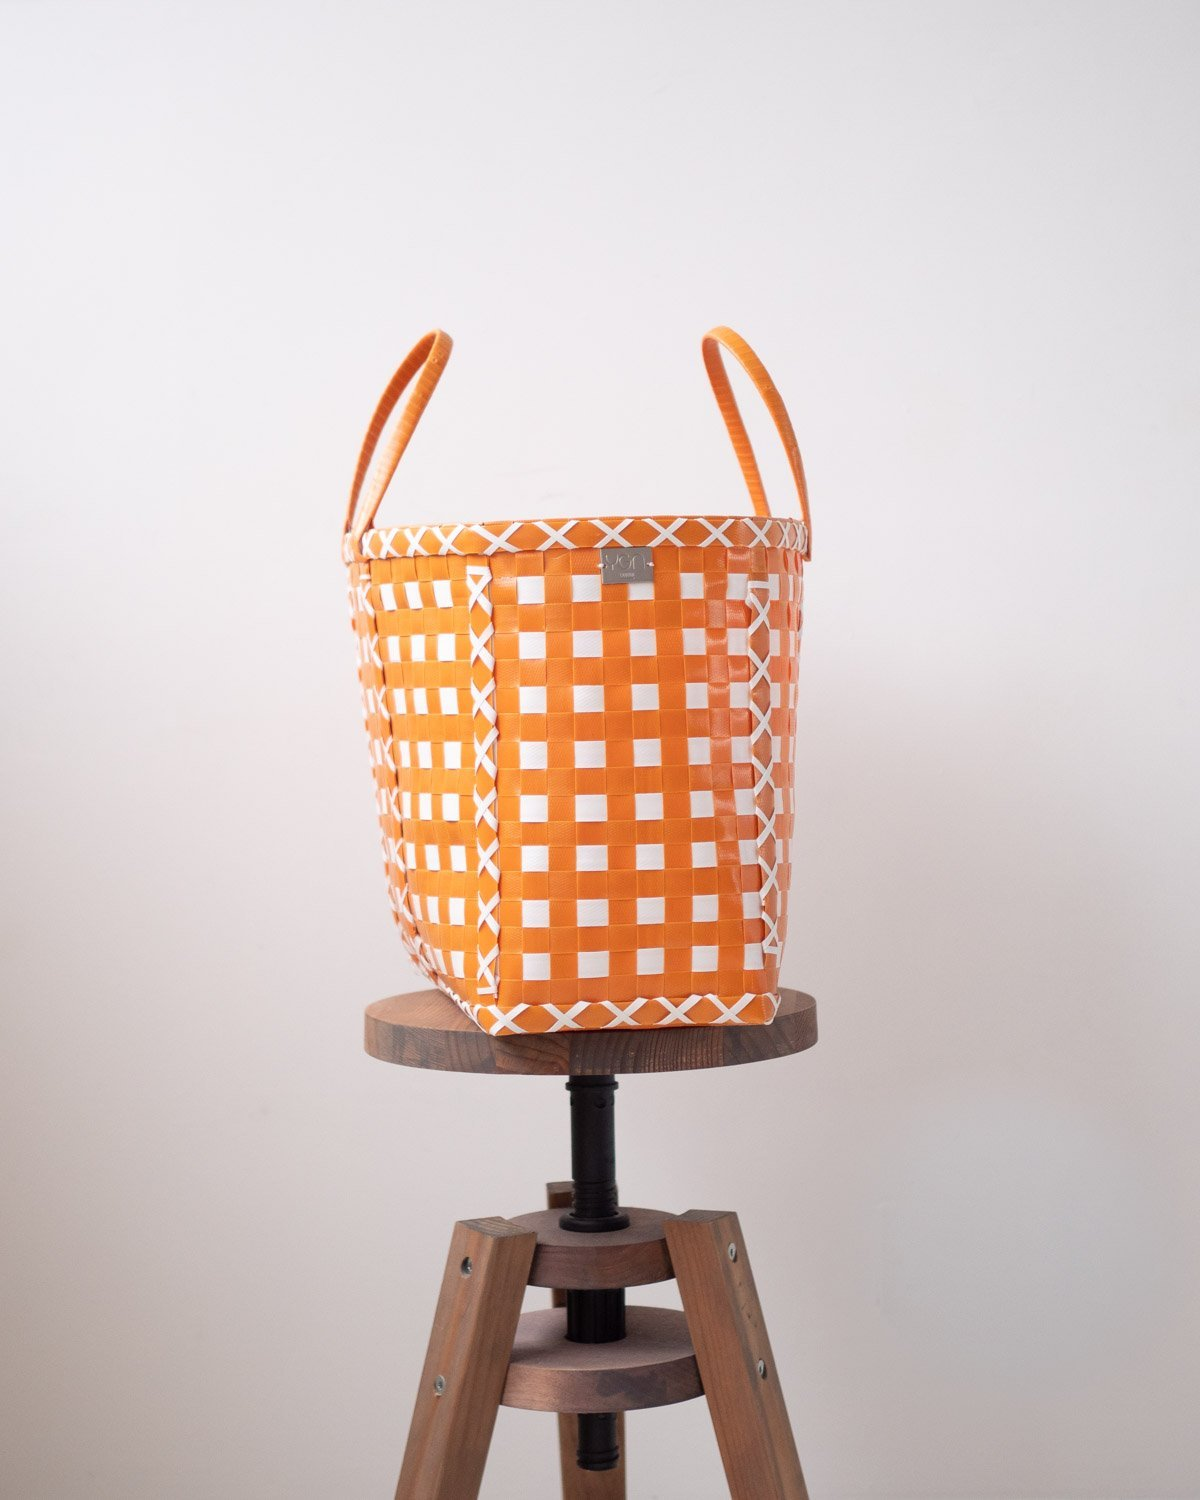 Orange and White Cross Design Basket | Upcycled Shopping Basket - YGN Collective